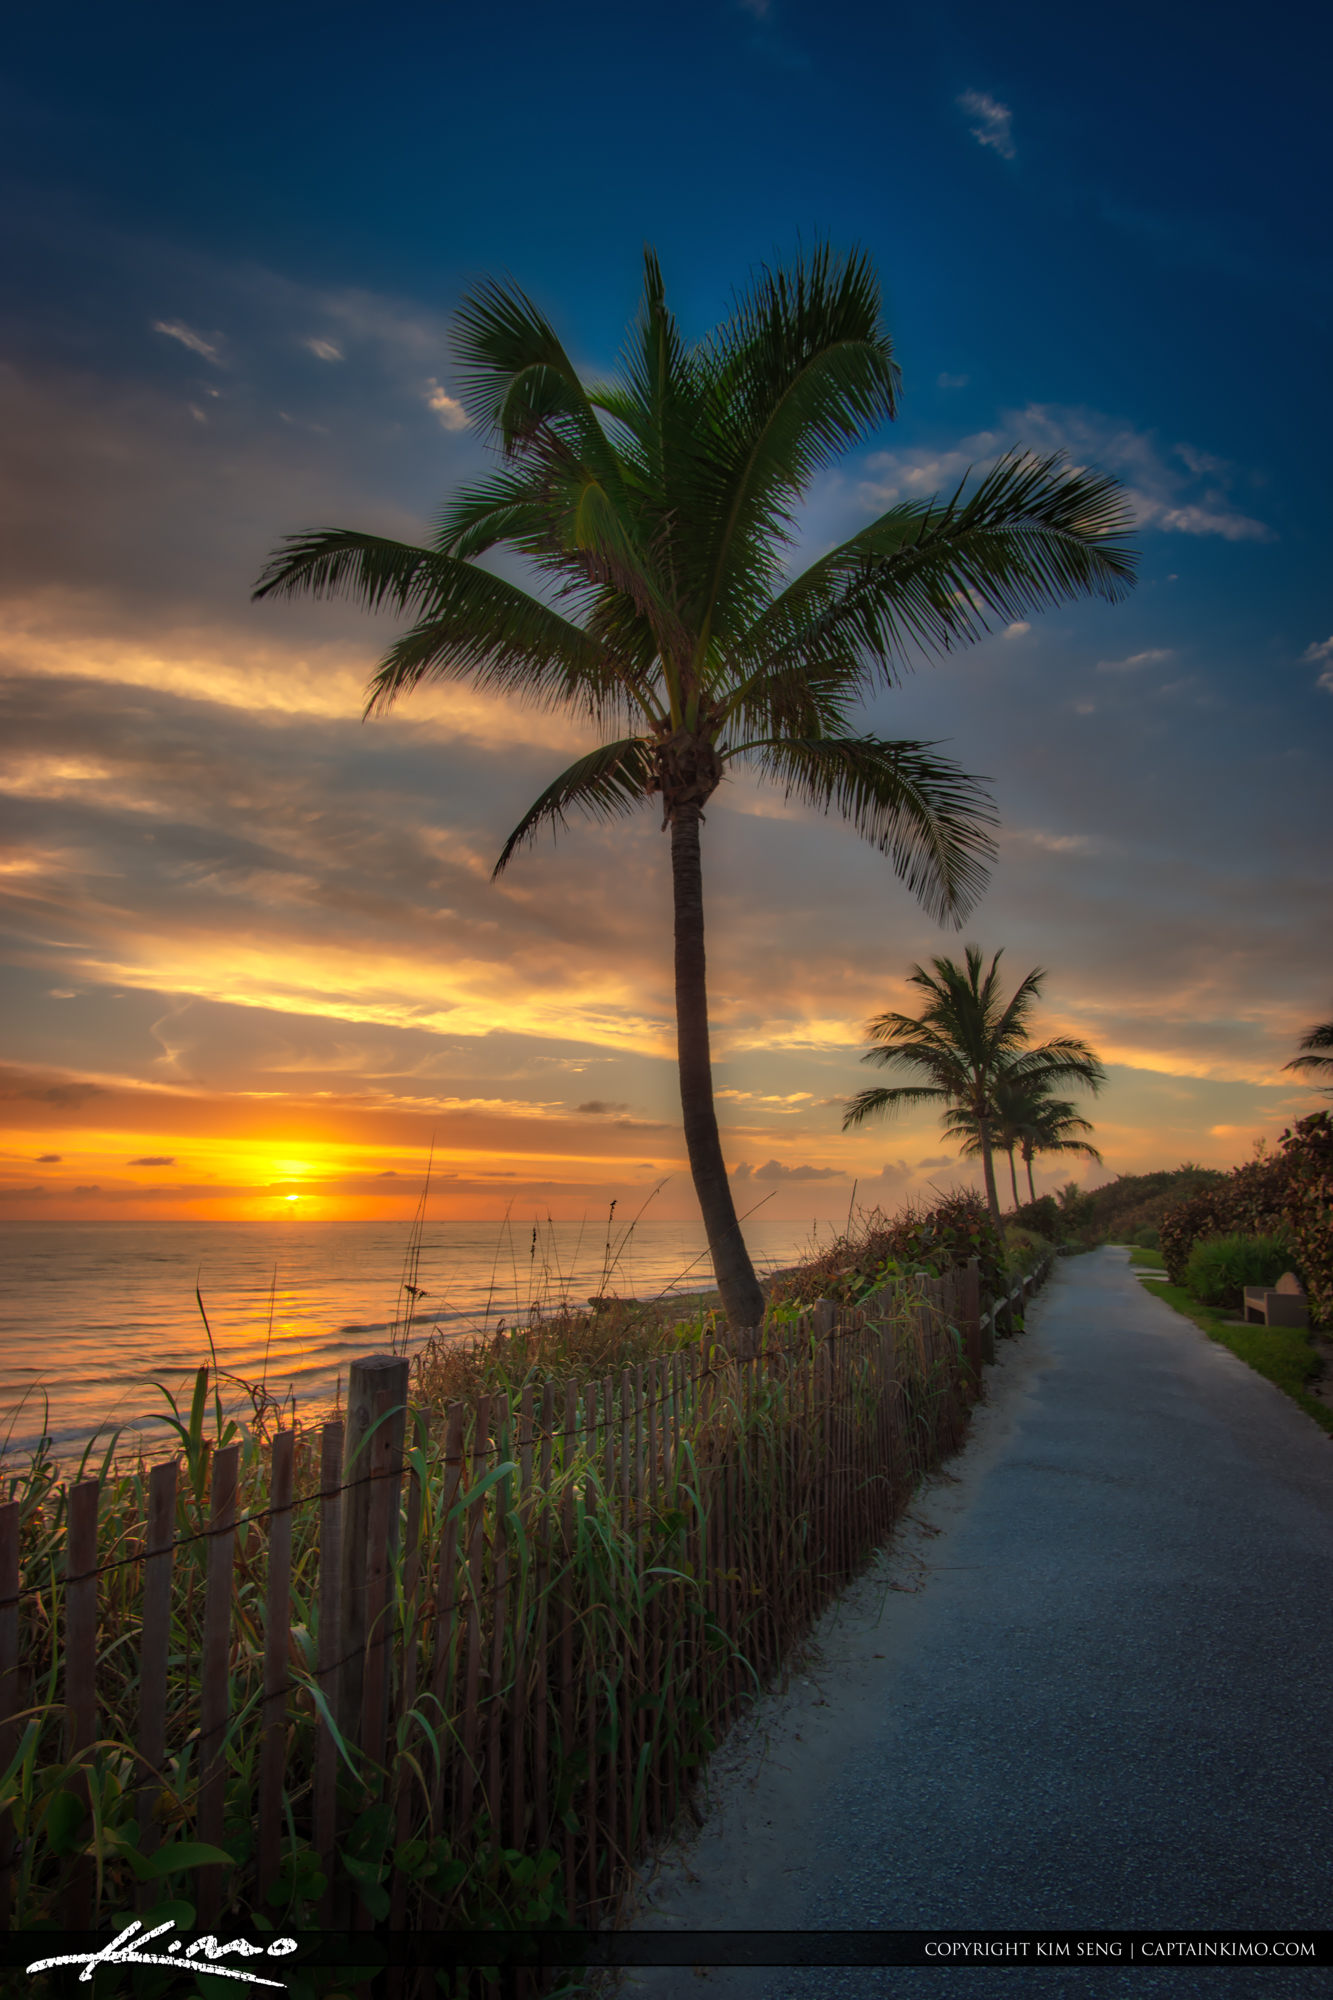 Sunrise at Coral Cove Park Coconut Tree